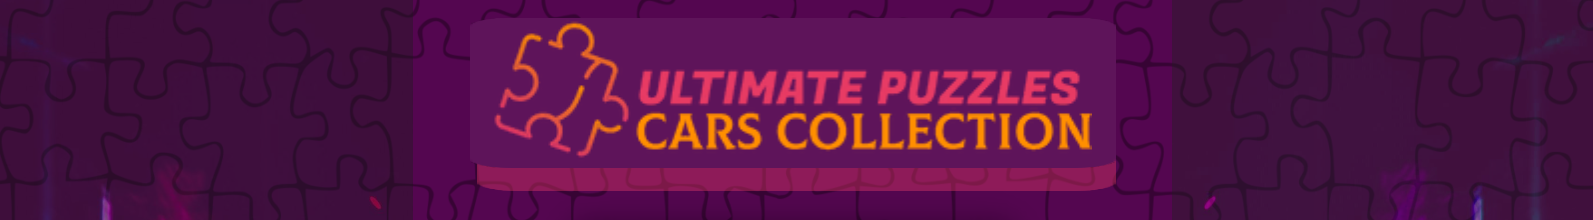 Ultimate Puzzles Cars Collection